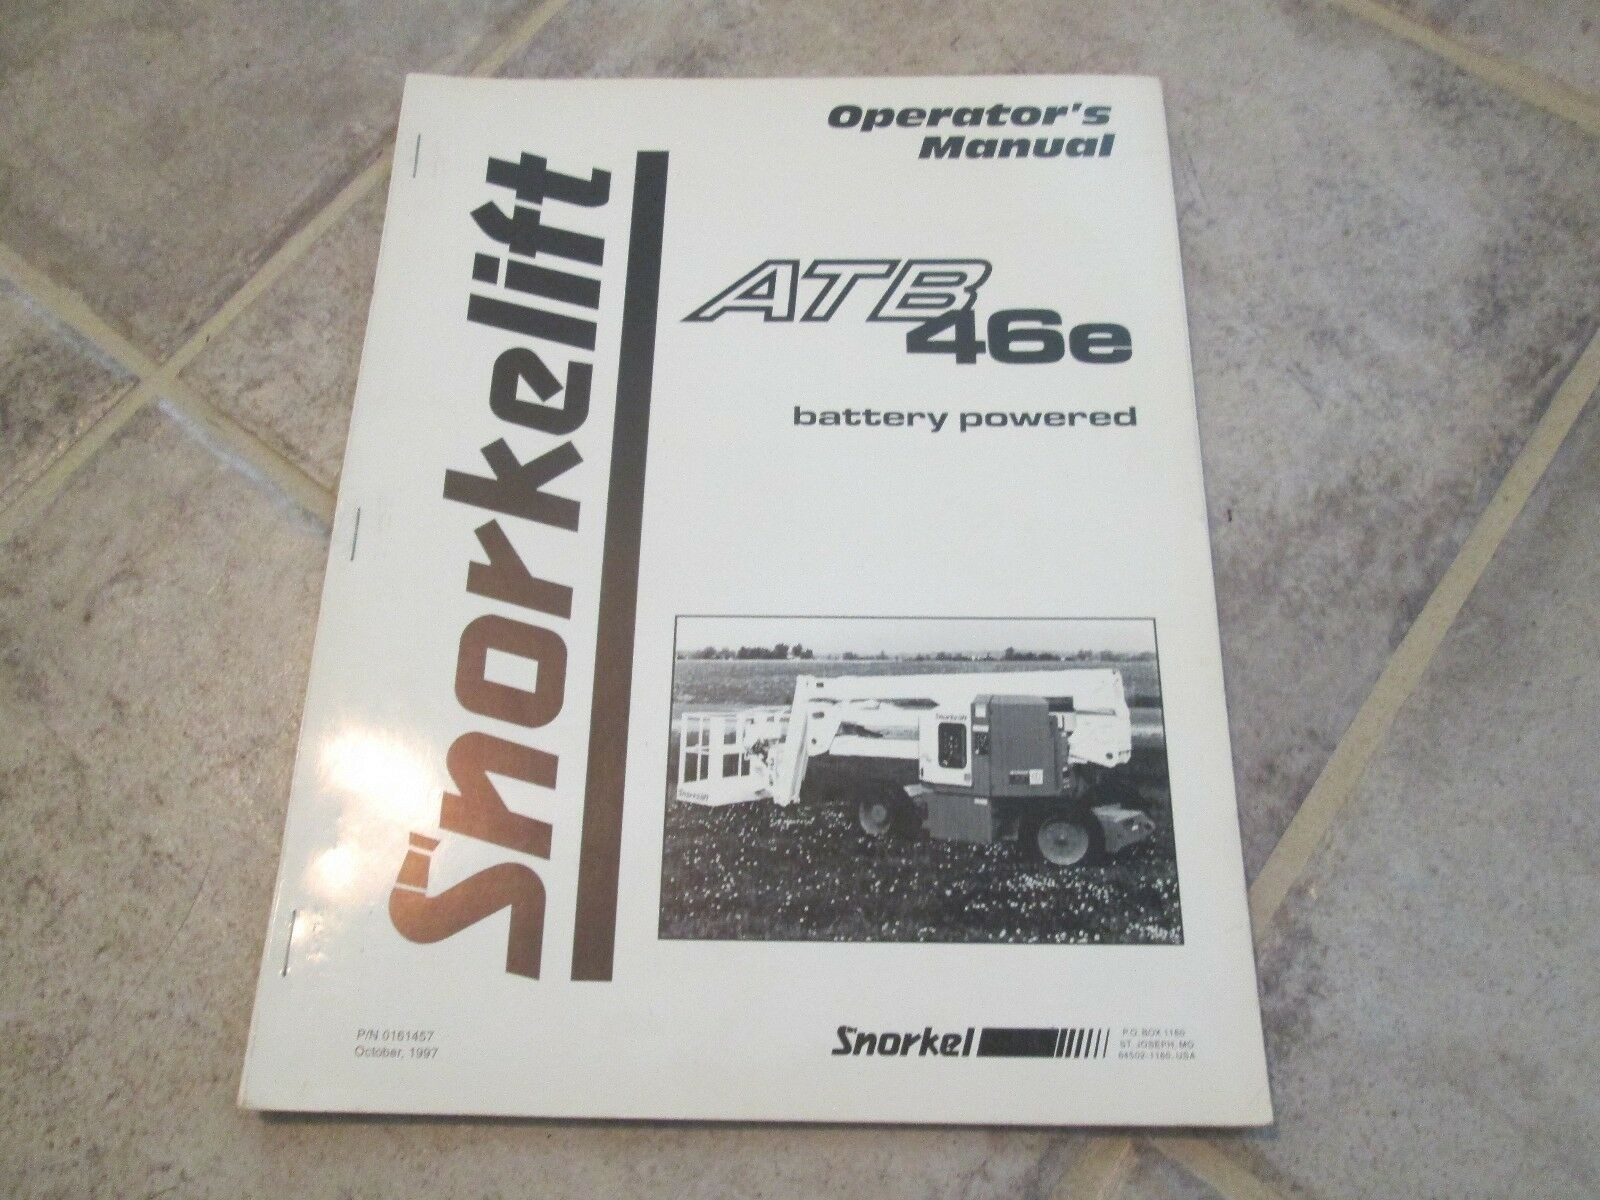 Snorkel Parts Manual atb-33e Dealer Snorkel atb 46e Boom Lift Operator S Manual Good Snorkelift Manual atb46e 1997 Of Snorkel Parts Manual atb-33e Dealer